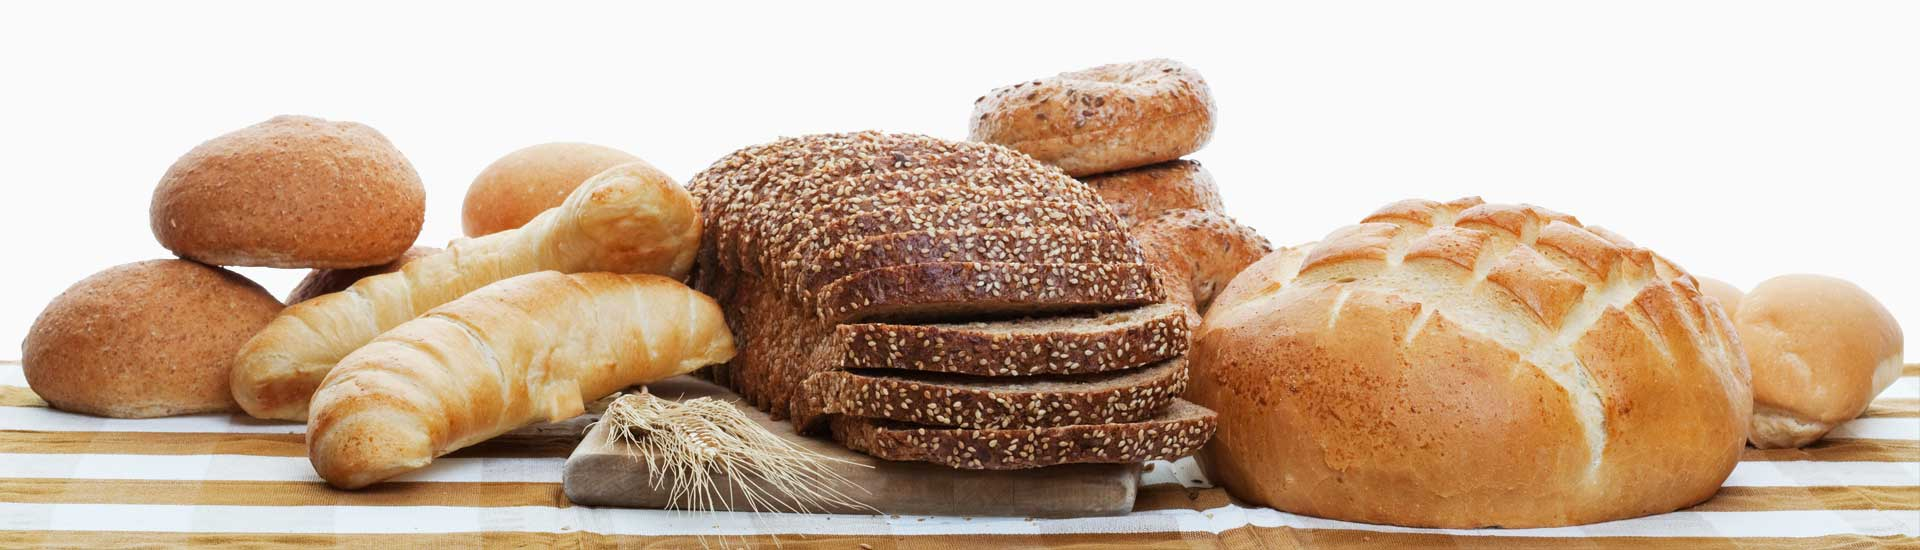 kosher wholesale bread england